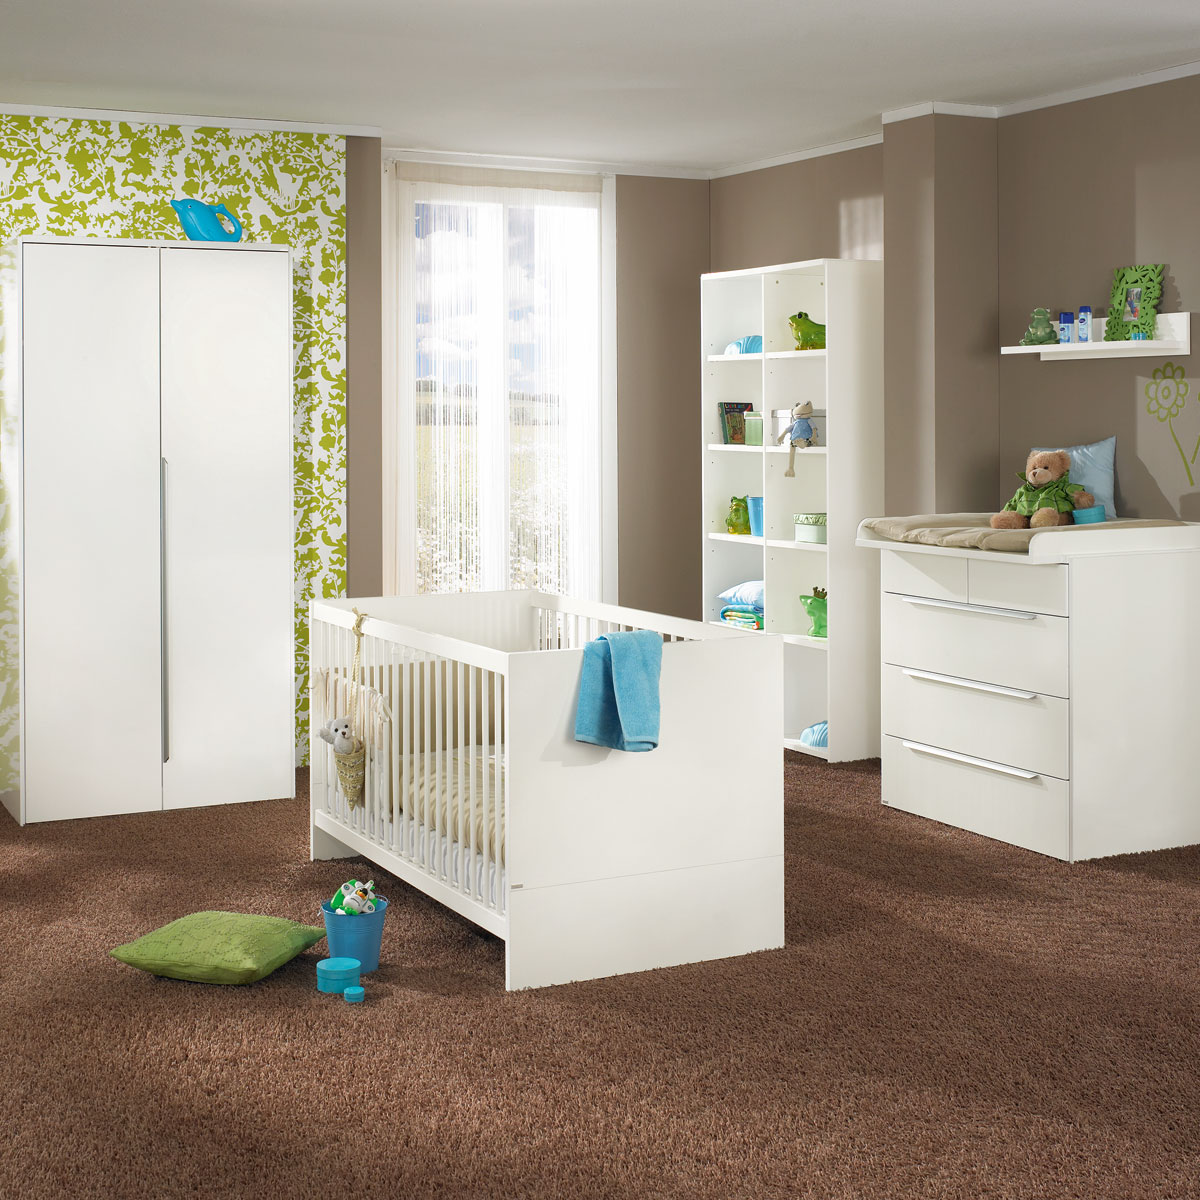 paidi fabiana kinderzimmer jetzt zum toppreis kaufen startseite design bilder. Black Bedroom Furniture Sets. Home Design Ideas